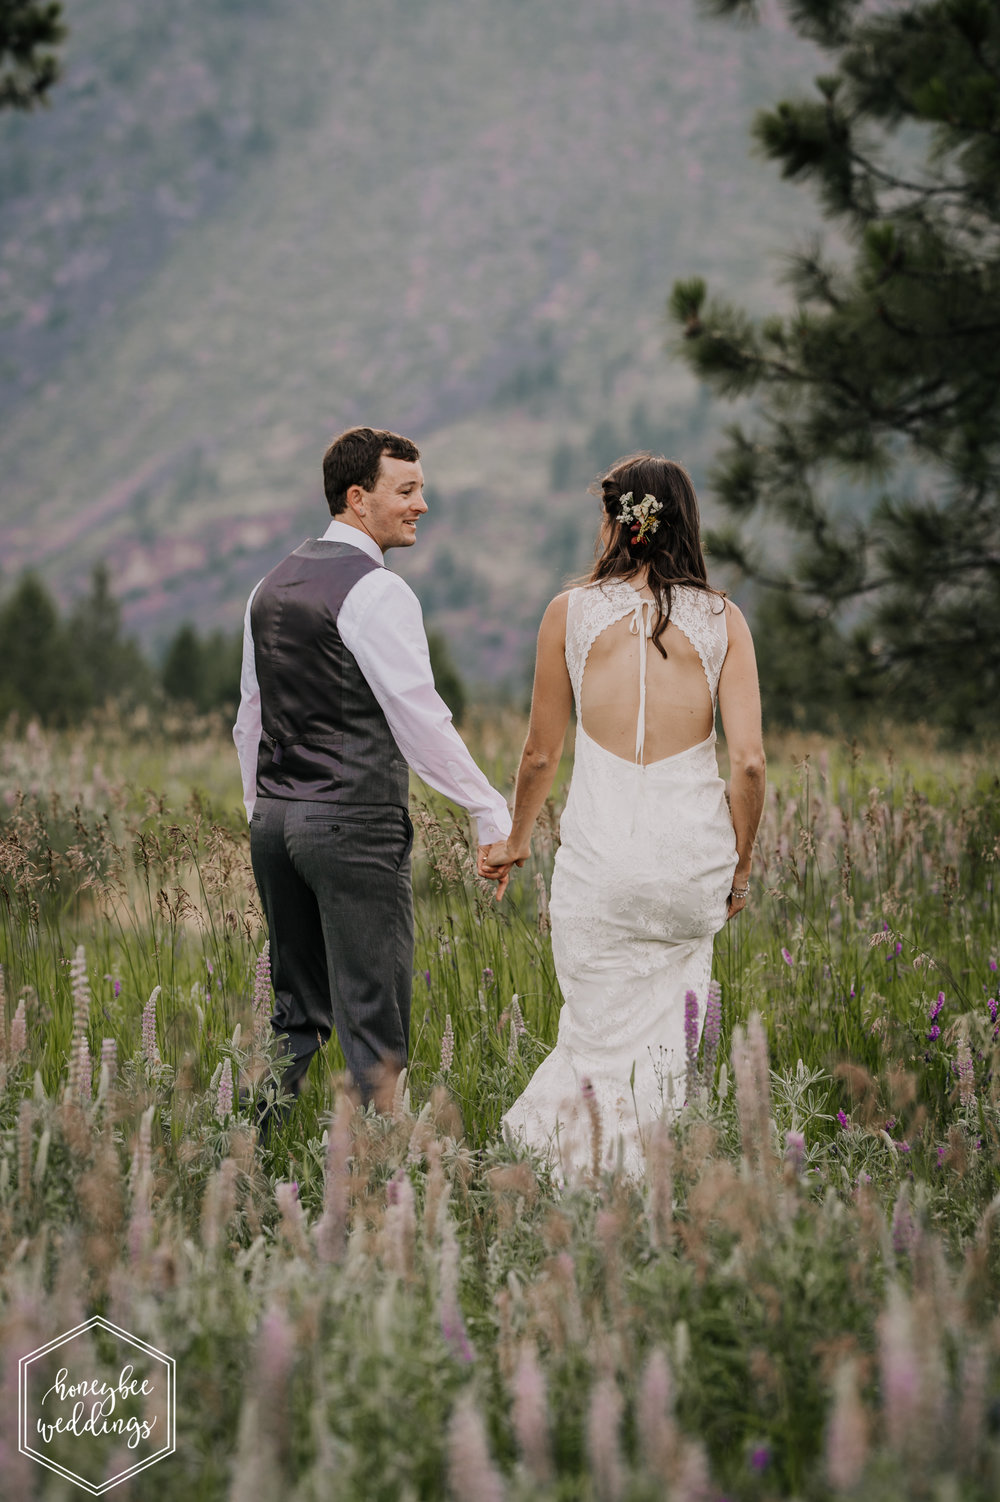 544 White Raven Wedding_Montana Wedding Photographer_Honeybee Weddings_ Meghan Maloney + Arza Hammond 2018-9477.jpg